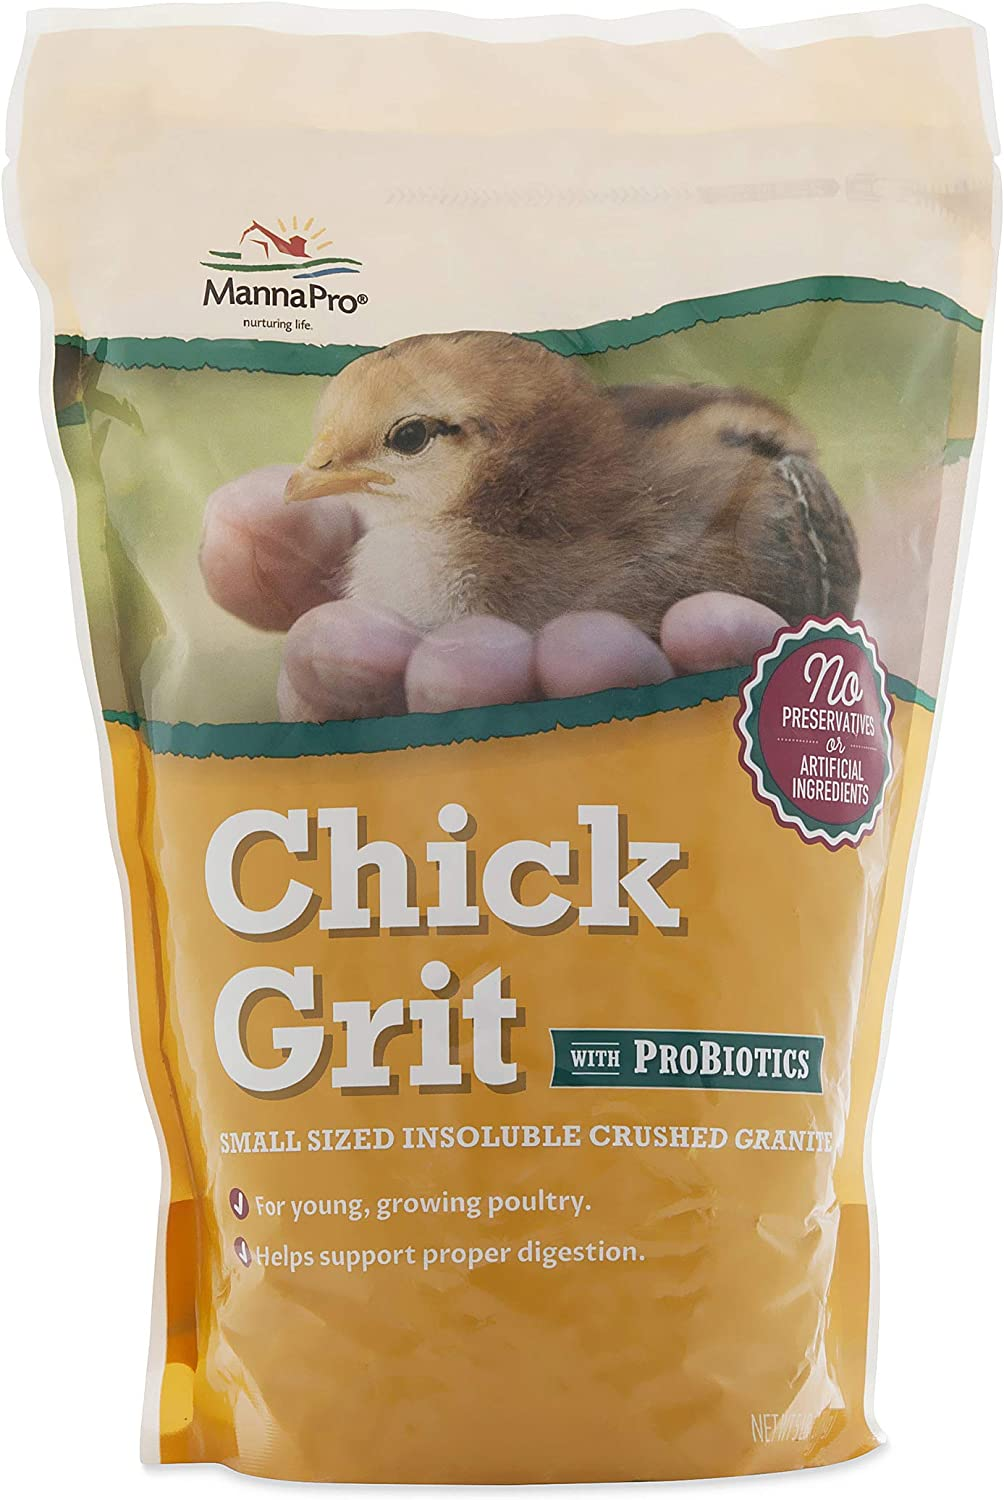 Manna Pro Chick Grit with Probiotics | Formulated with Probiotics and Supports Healthy Digestion | 5 Pounds